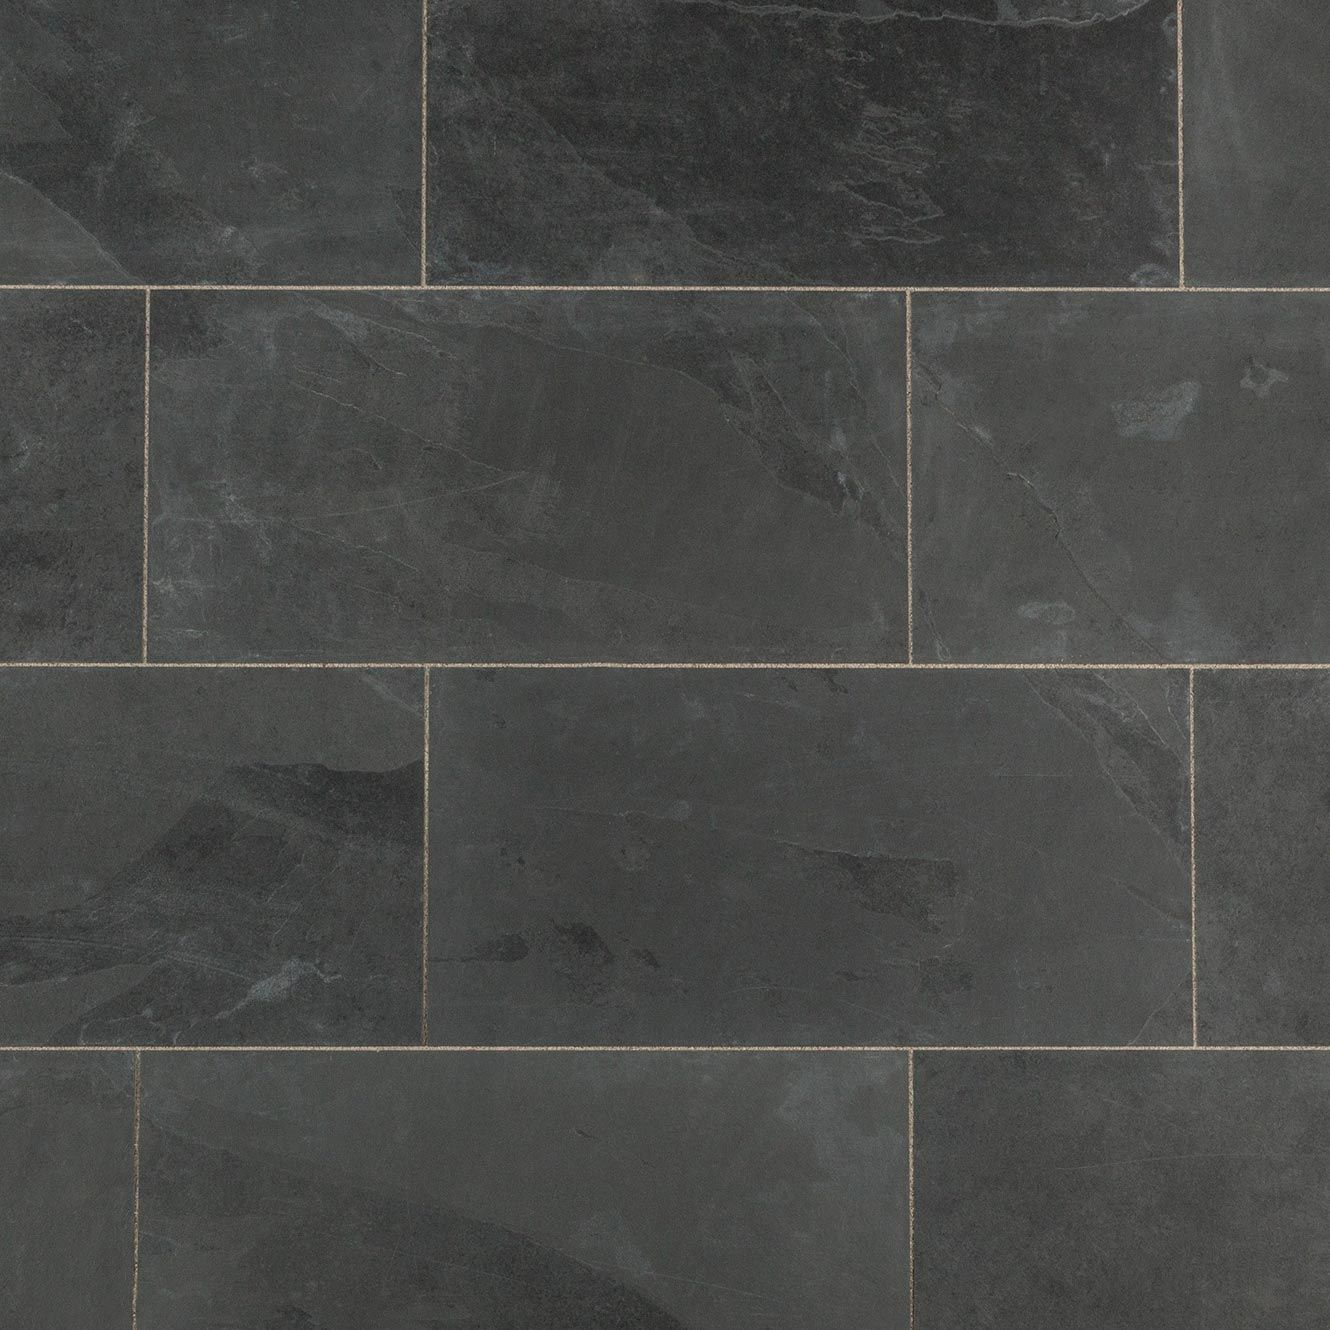 Slate Tile | Slate, Stone and Natural